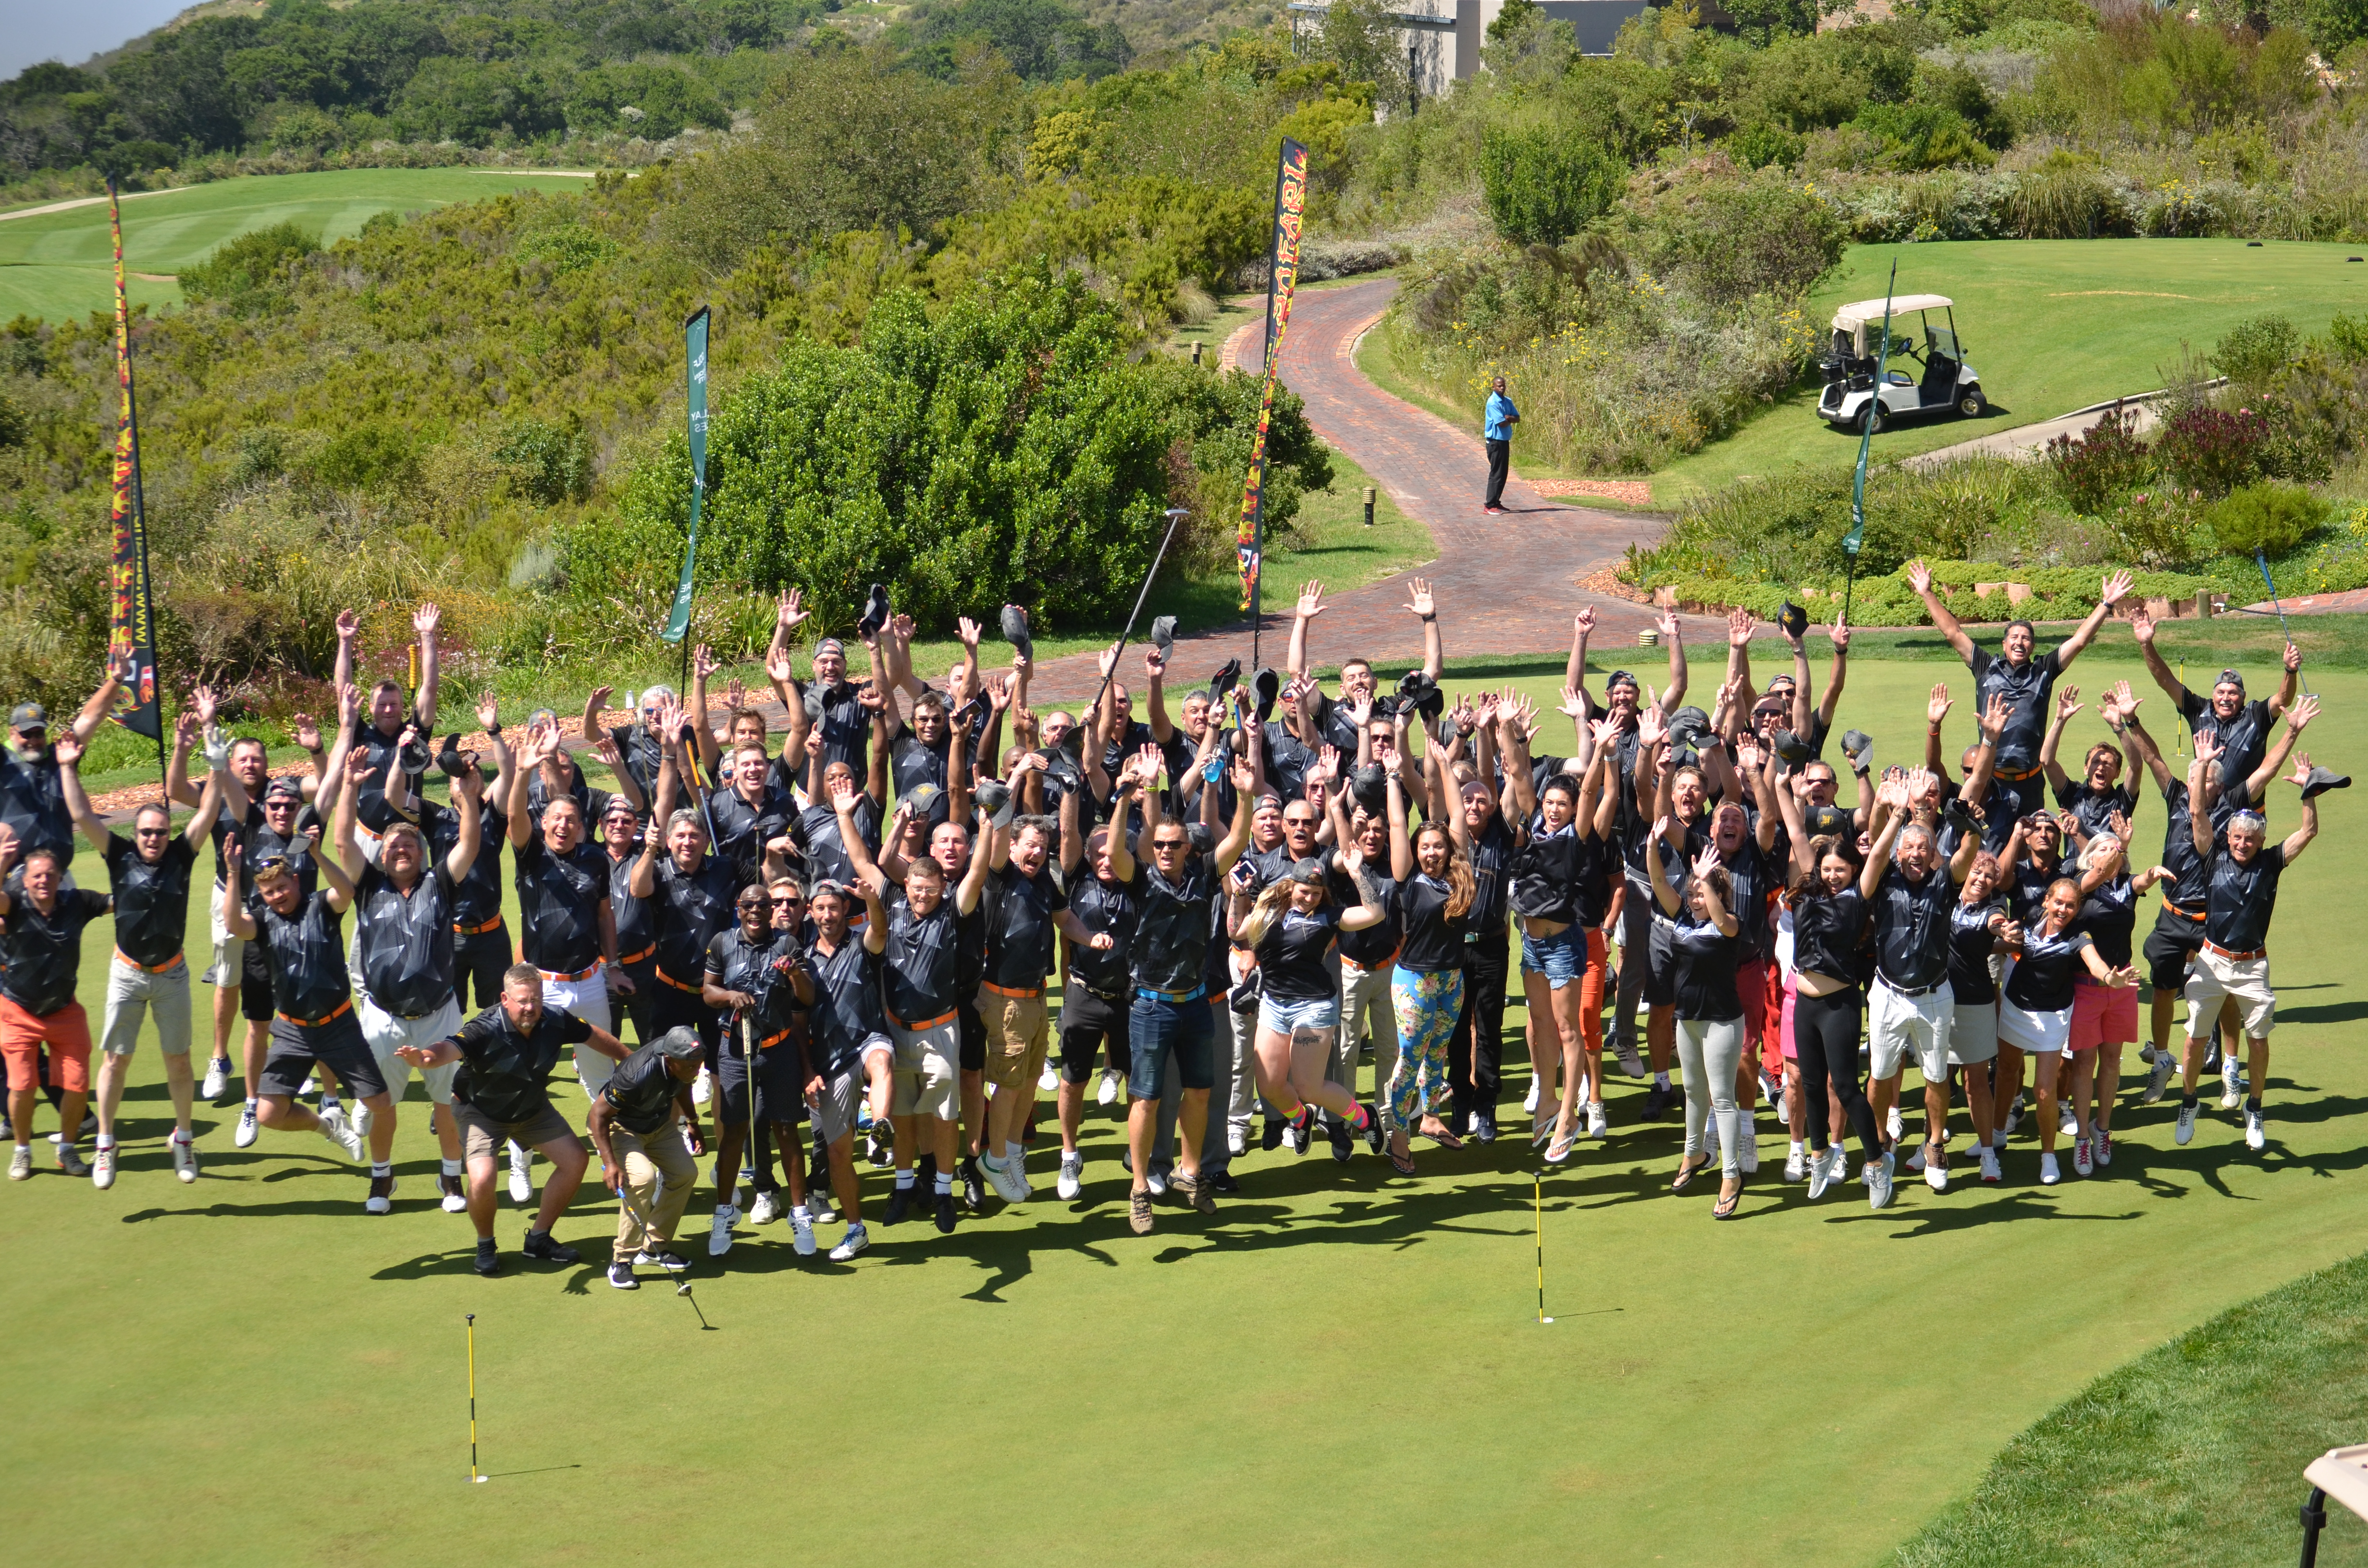 11th Annual Ultimate Garden Route Road Trip 2020